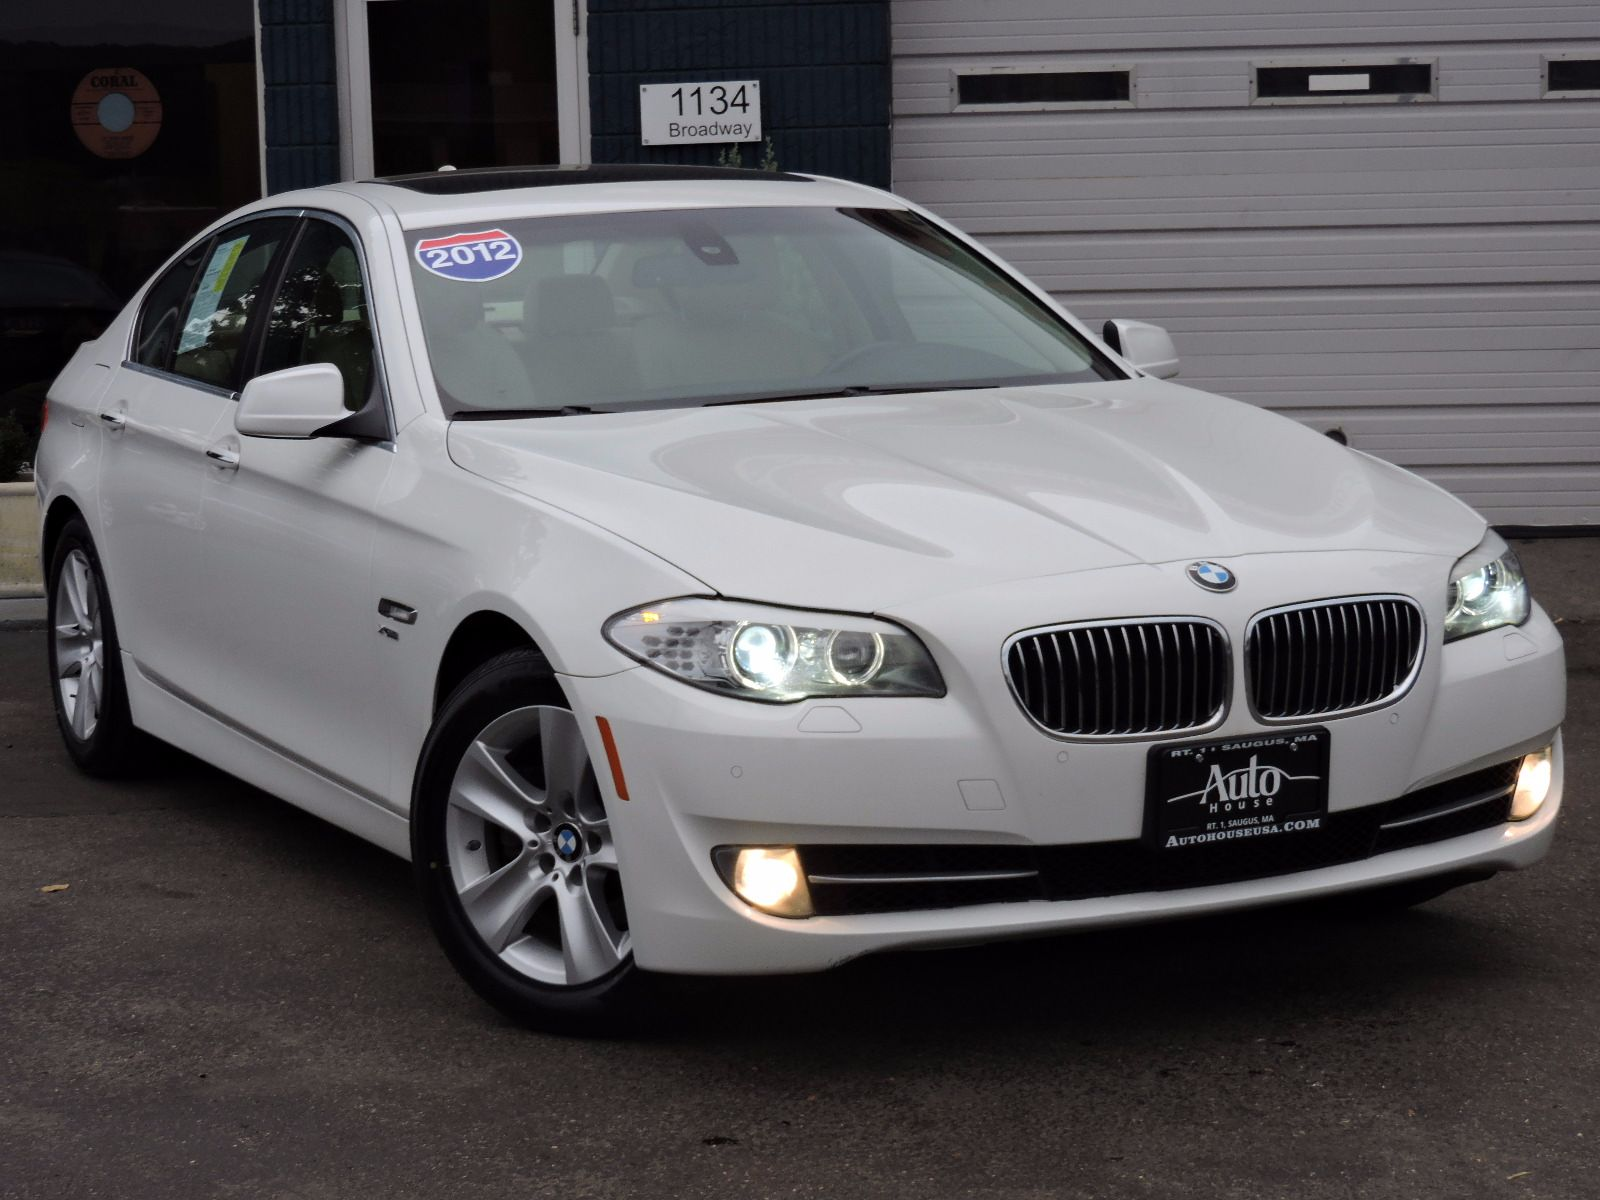 2012 BMW 528i xDrive - All Wheel Drive - Navigation